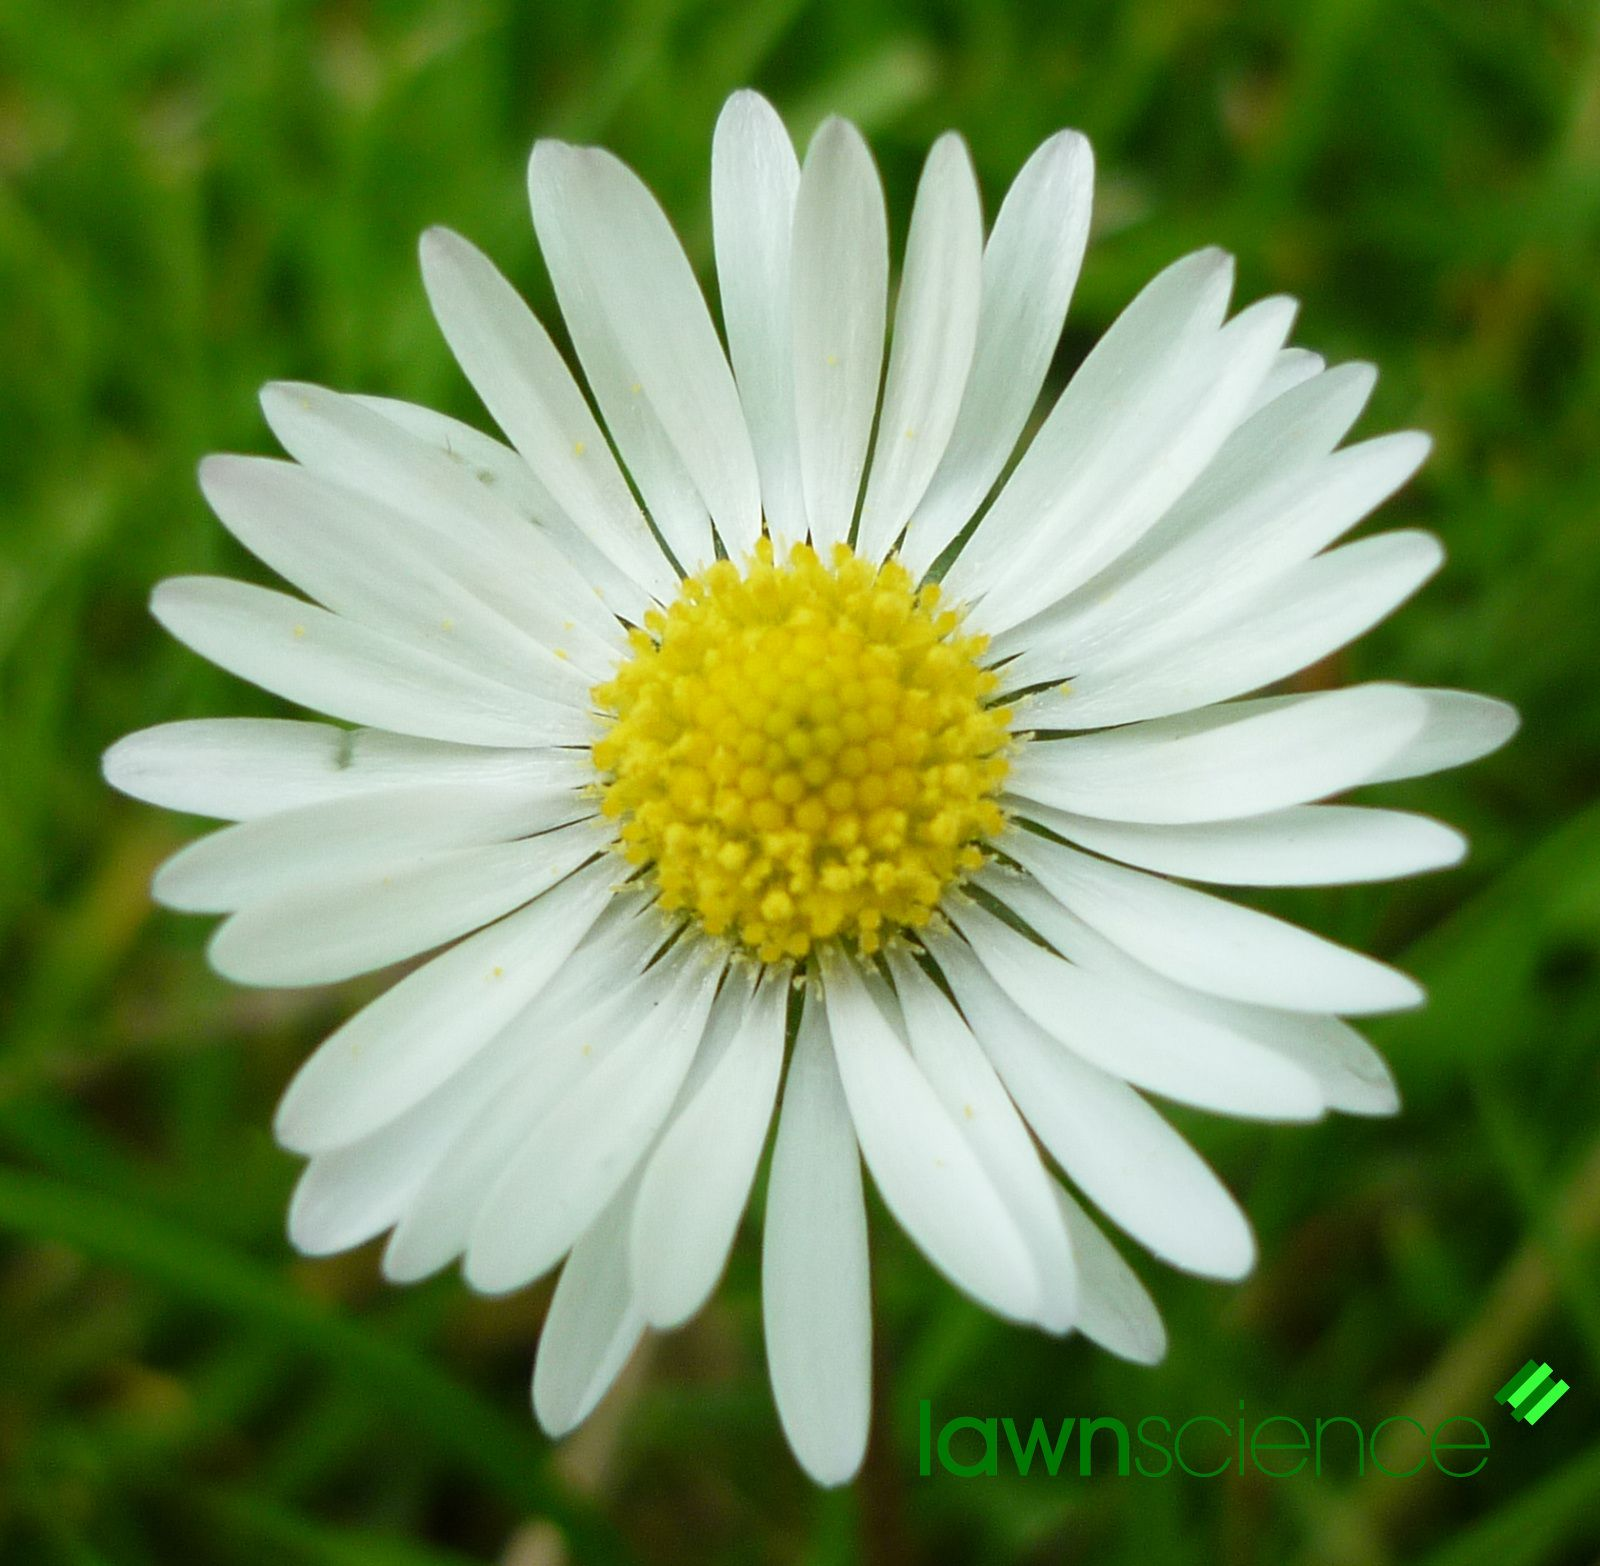 Daisy bellis perennis lawn weeds lawnscience lawn care blog daisy bellis perennis lawn weeds lawnscience lawn care blog dhlflorist Images